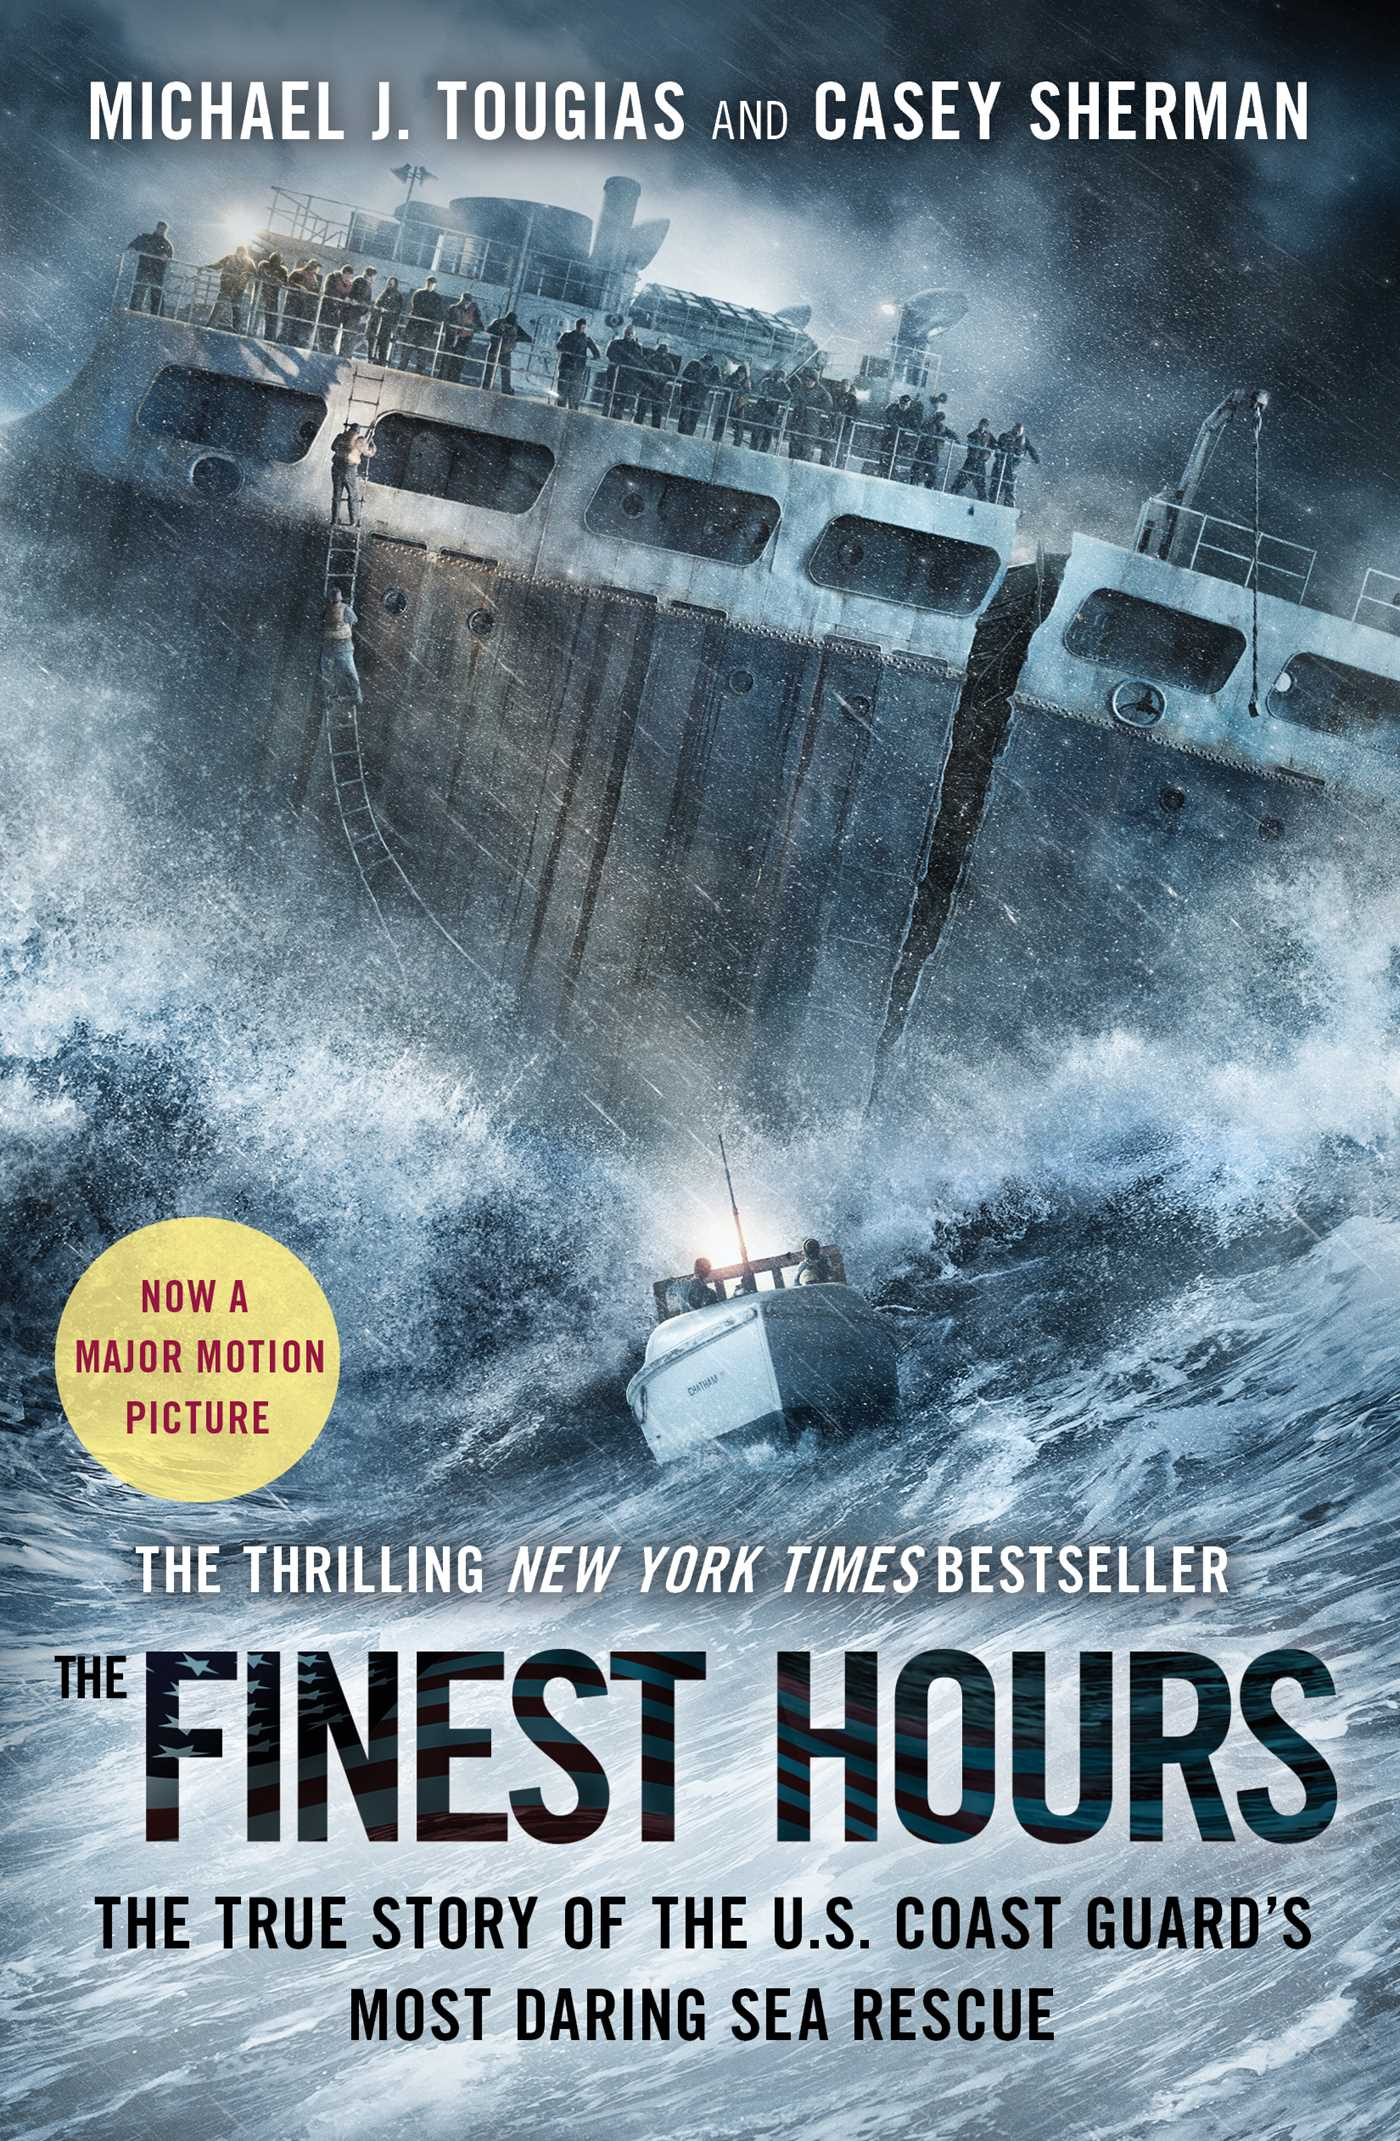 Coast High Performance >> The Finest Hours | Book by Michael J. Tougias, Casey Sherman | Official Publisher Page | Simon ...